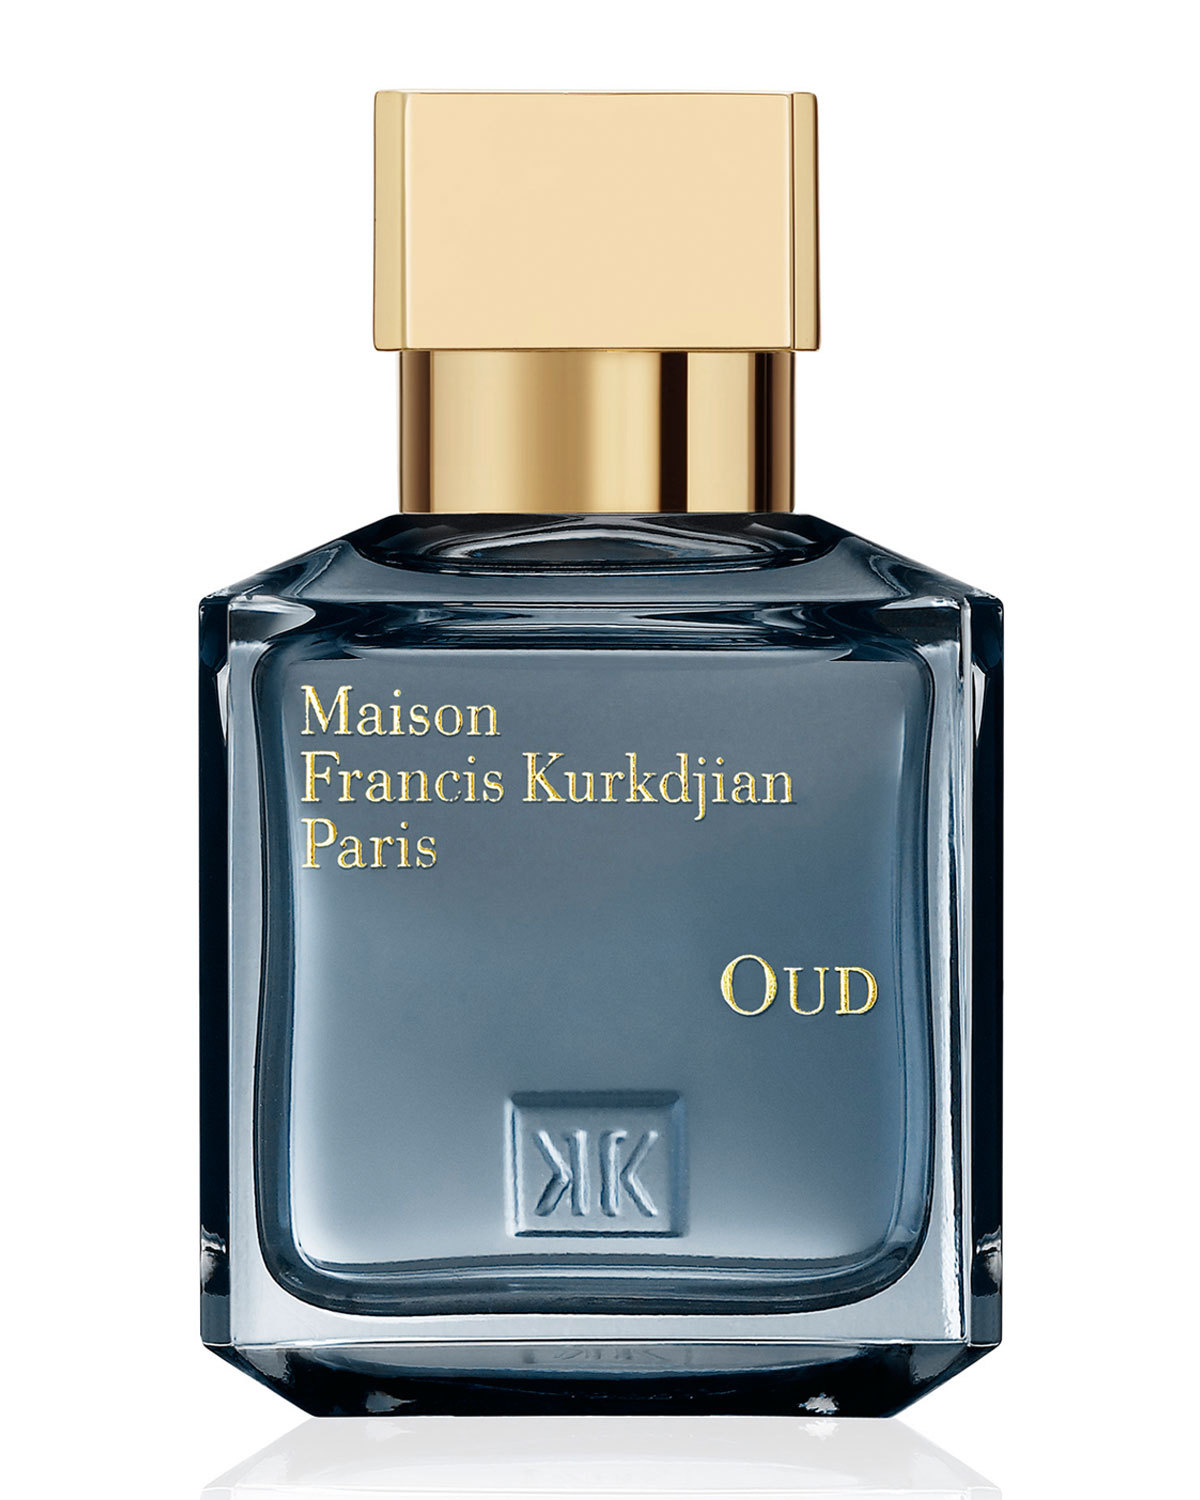 OUD by FRANCIS KURKDJIAN 5ml Travel Spray AOUD CEDAR SAFFRON PATCHOULI Perfume